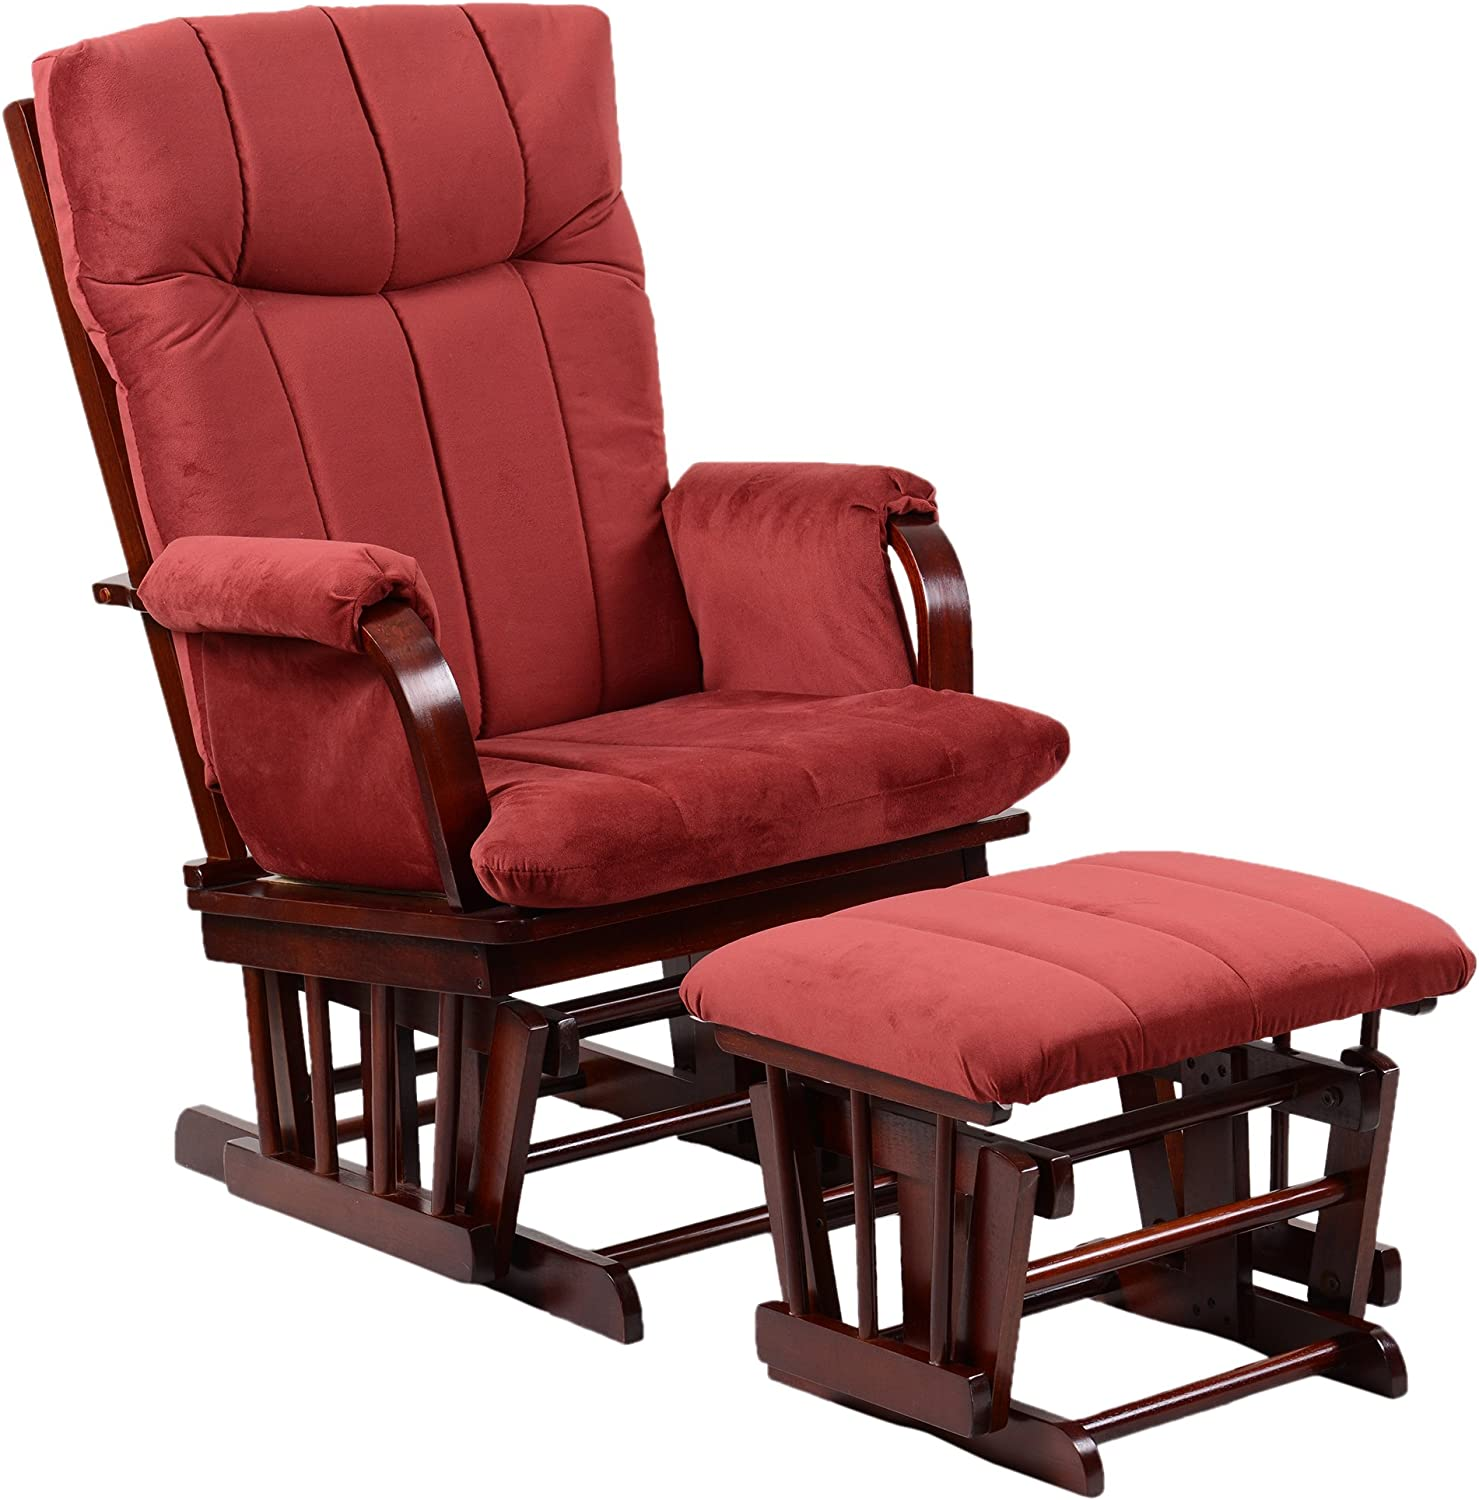 Artiva USA Home Deluxe Marsala Super Soft Microfiber Cushion Cherry Wood Glider Chair and Ottoman Set, Red